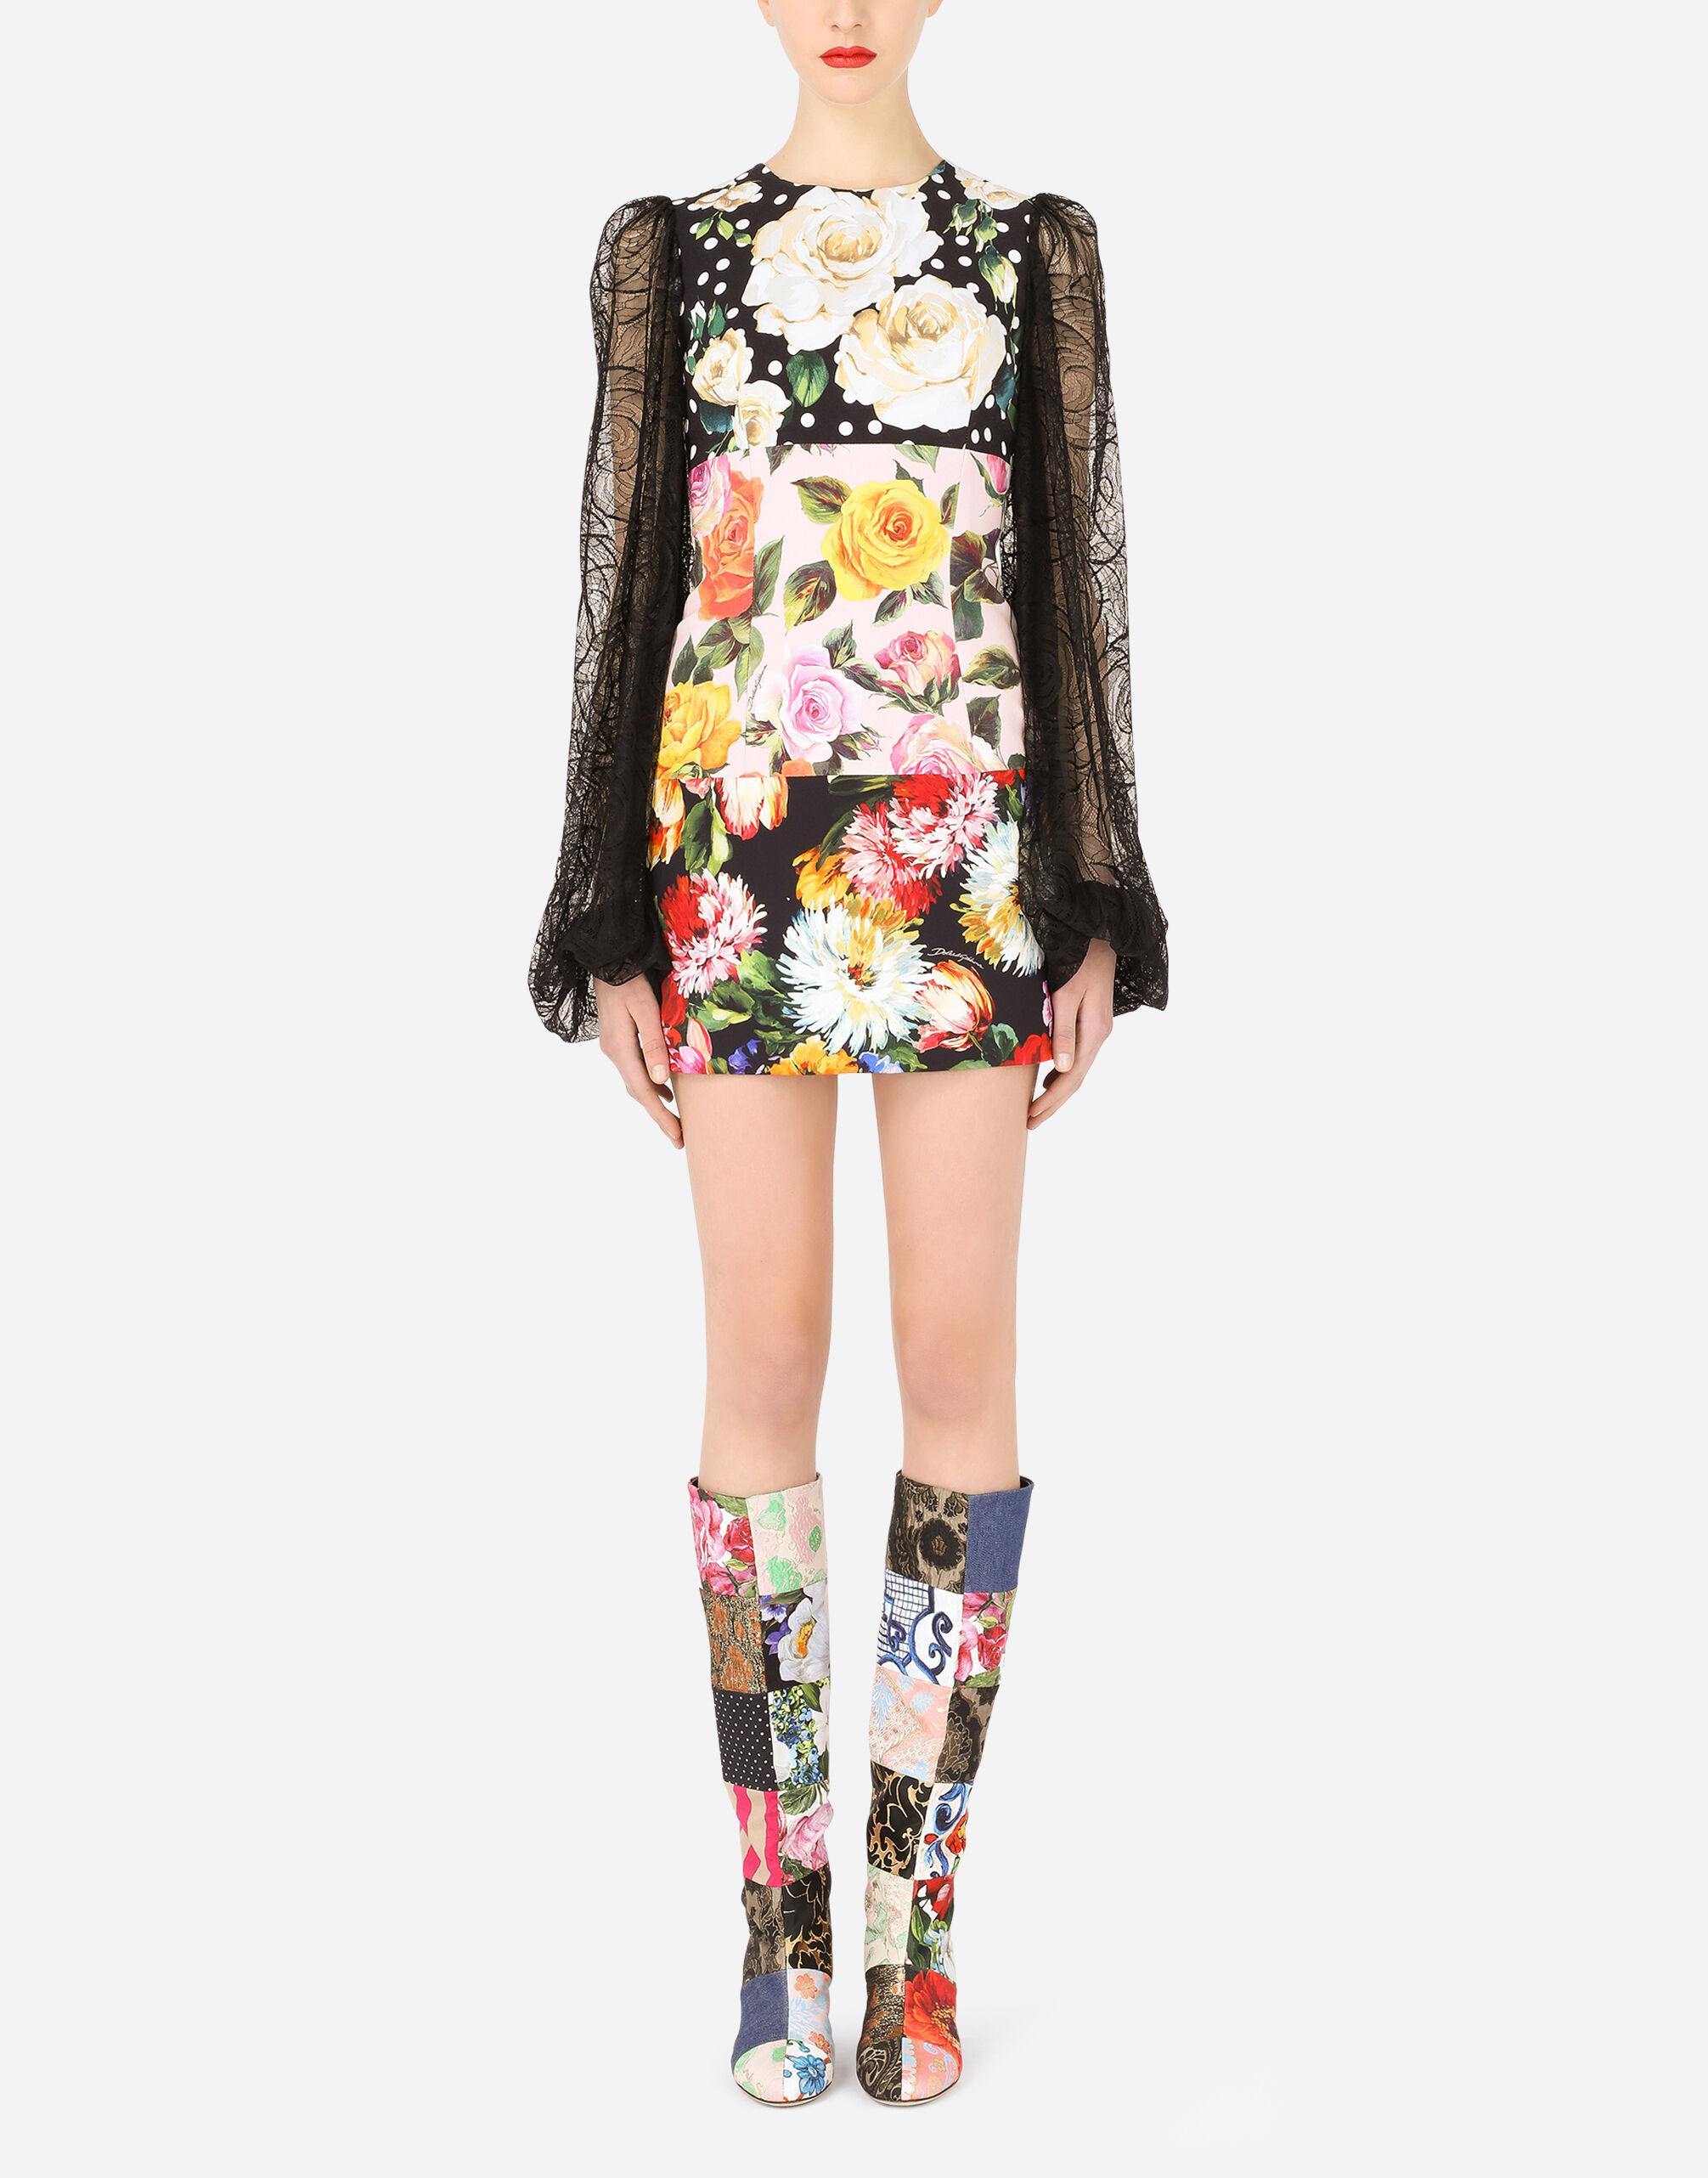 Short patchwork cady dress with lace sleeves